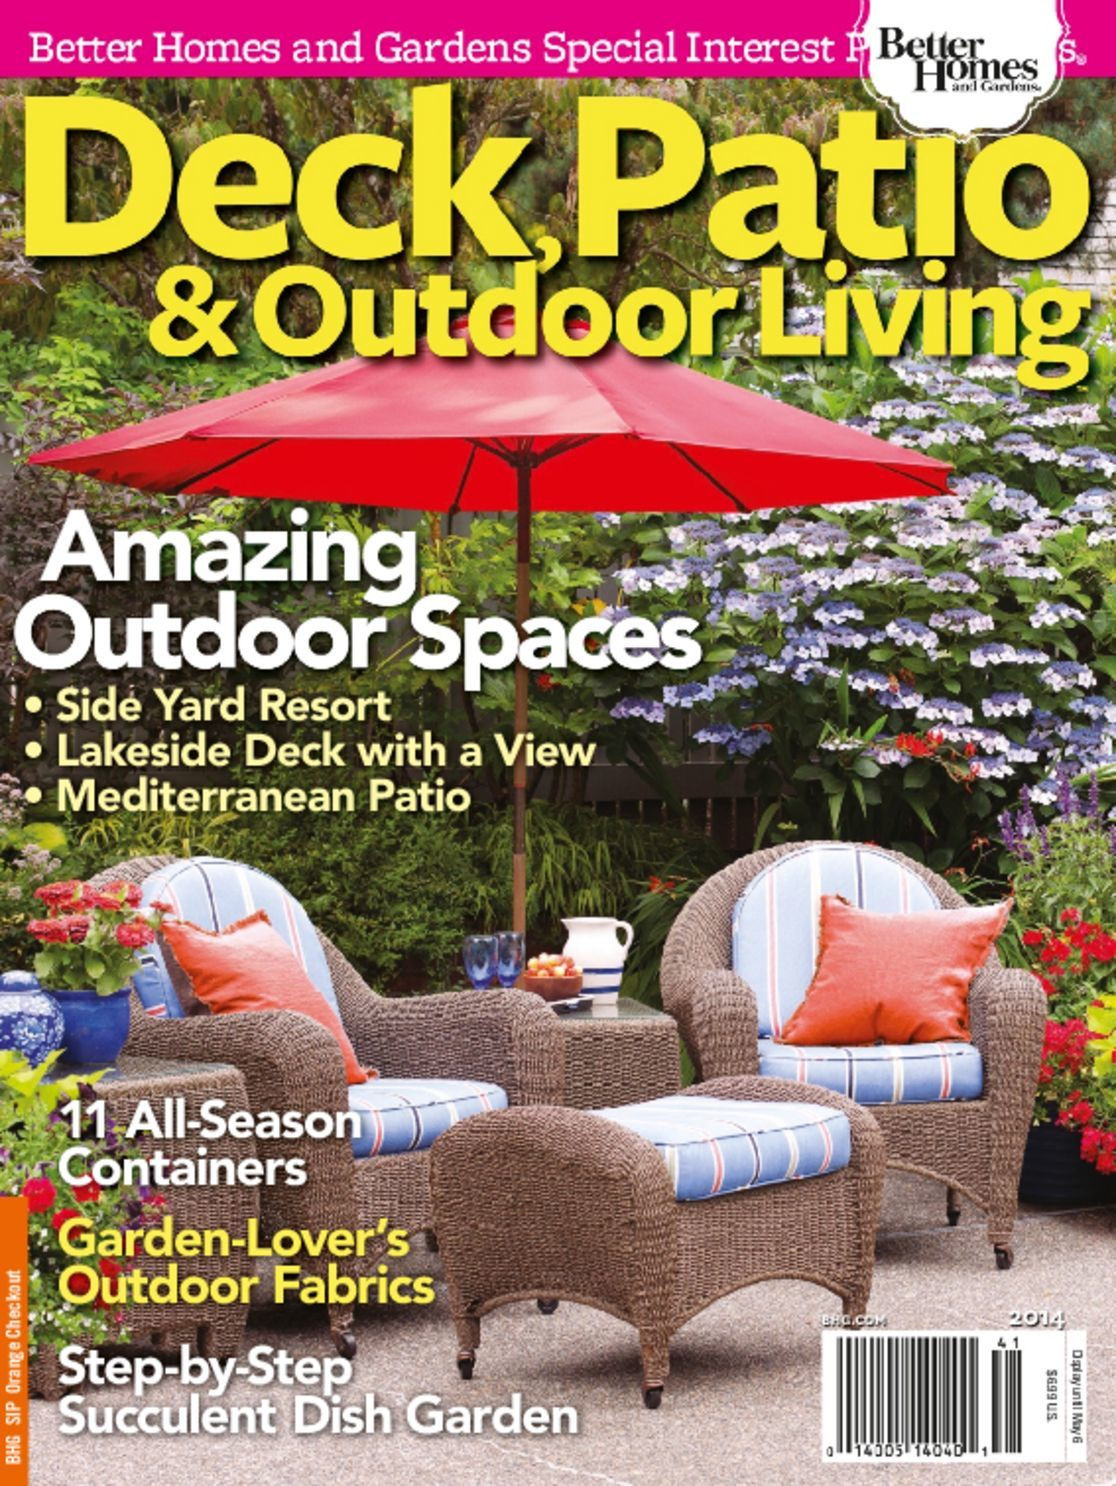 Backyard Living Magazine  Deck Patio & Outdoor Living Magazine Digital